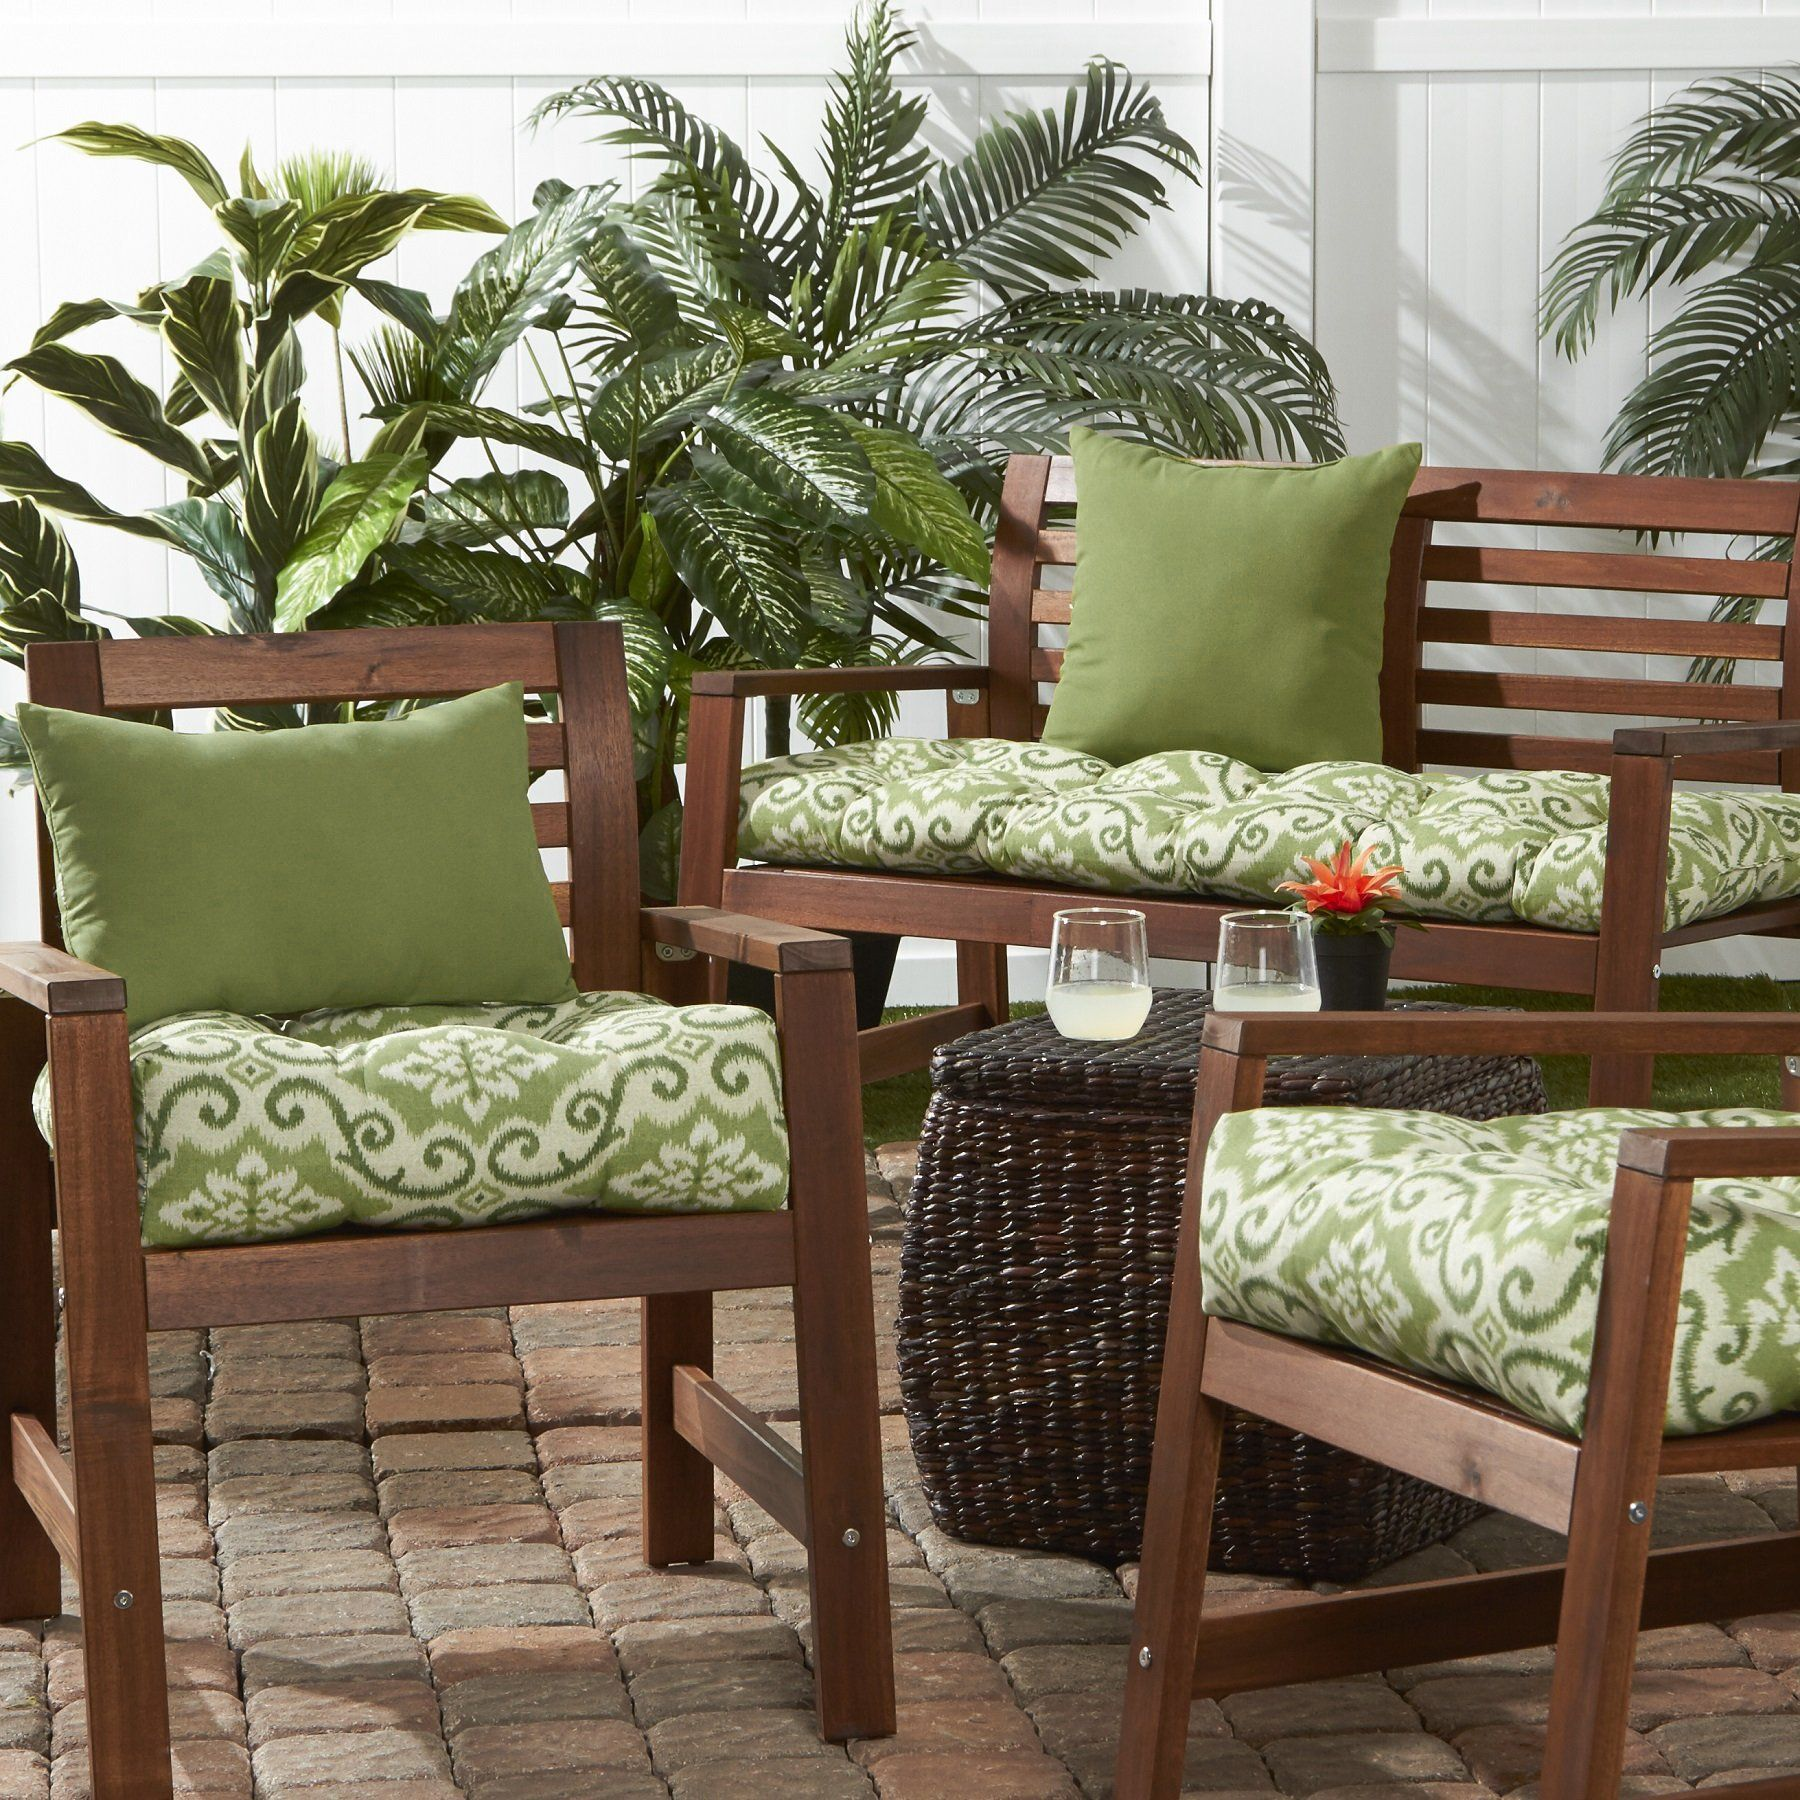 Greendale Home Fashions Indoor Outdoor Chair Cushion Green Ikat 20inch Click On The Imag Patio Seat Cushions Outdoor Chair Cushions Patio Furniture Cushions